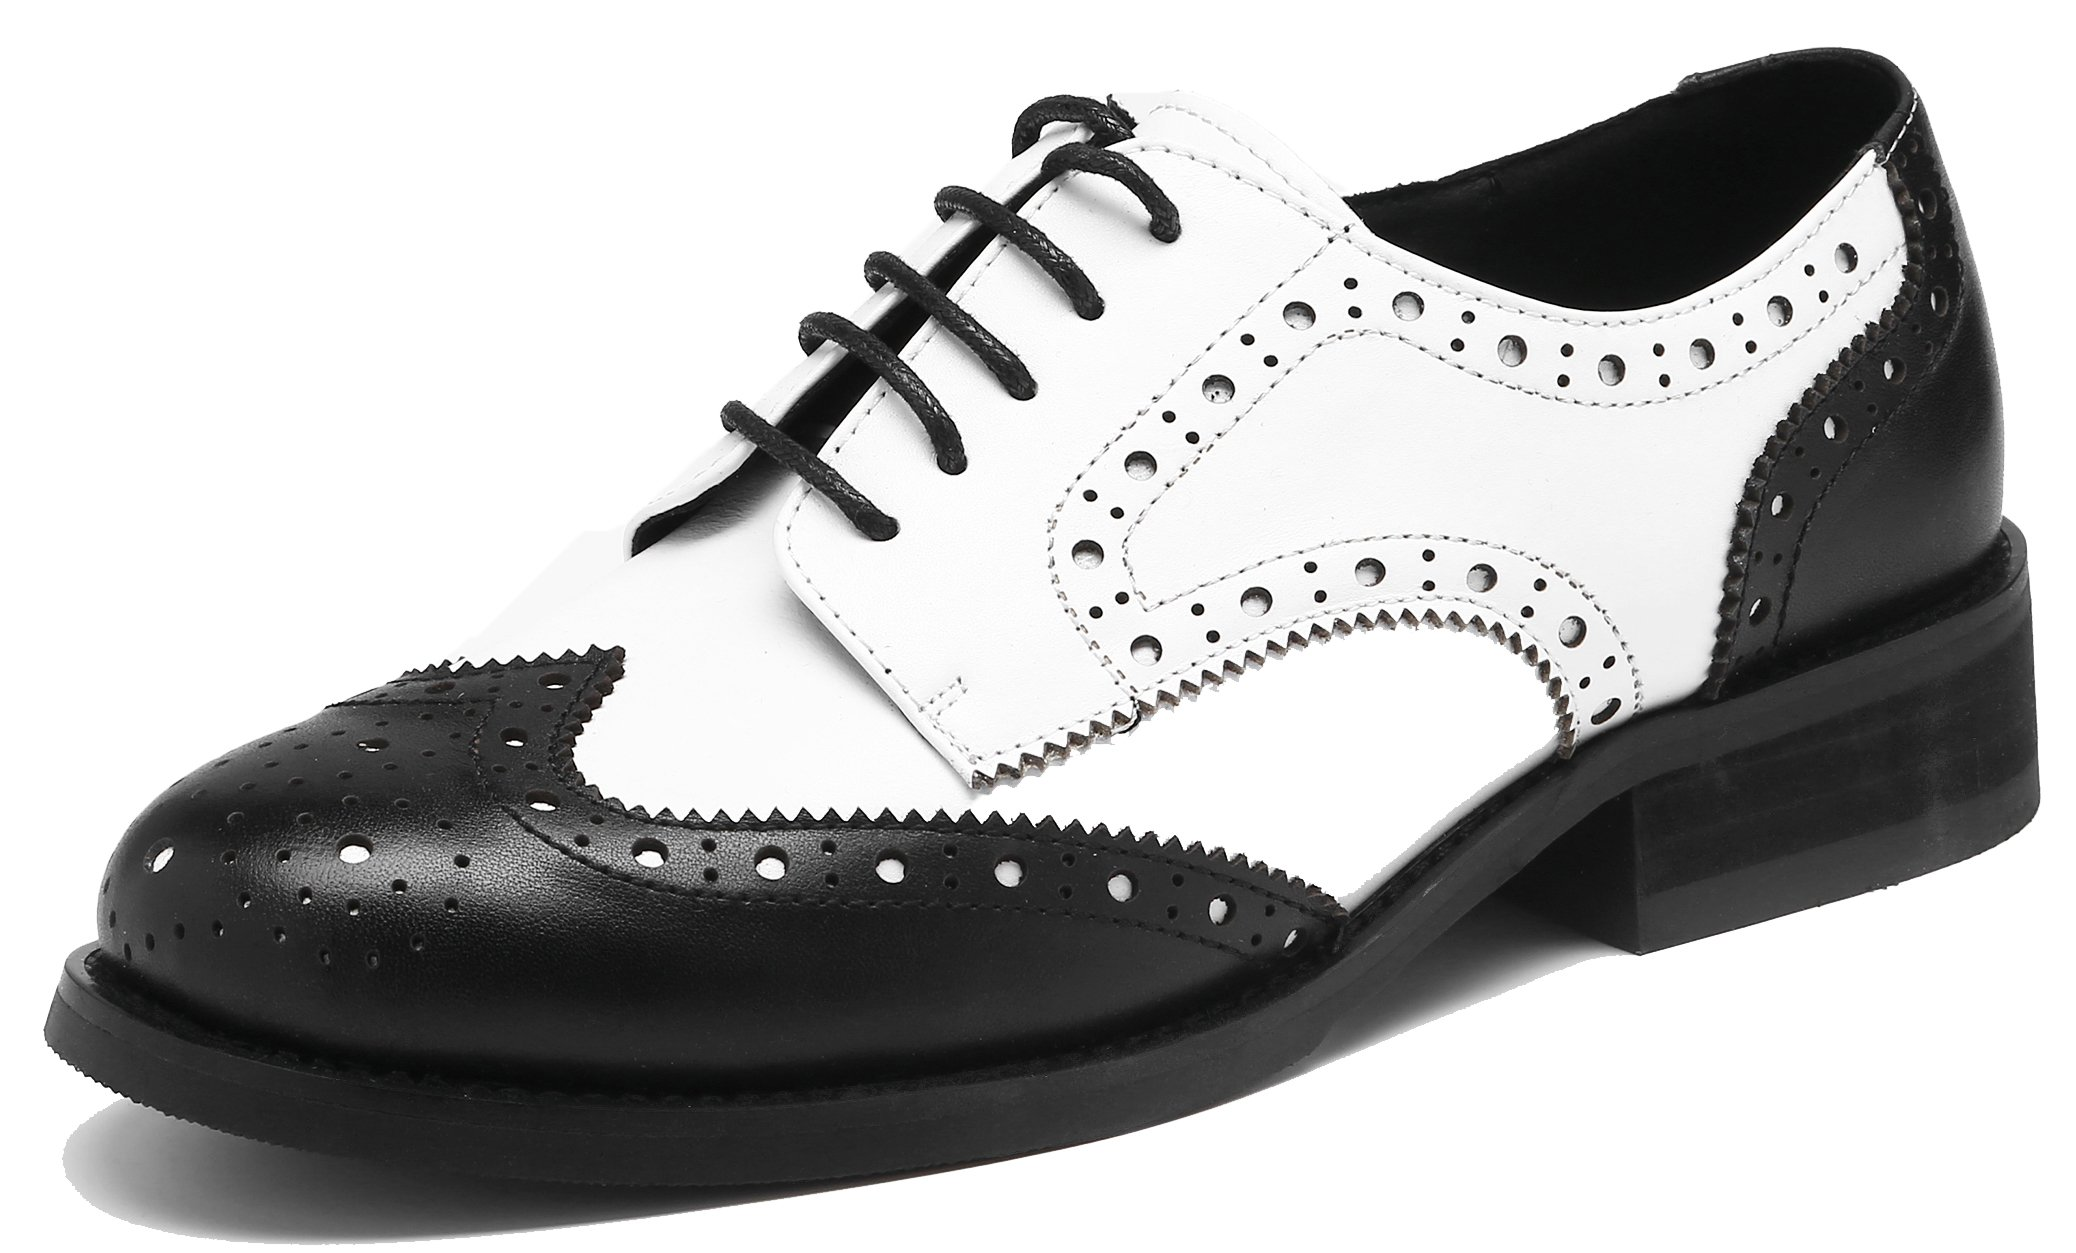 U-lite Women's Perforated Lace-up Wingtip Leather Flat Oxfords Vintage Oxford Shoes Brogues (9, Black White)